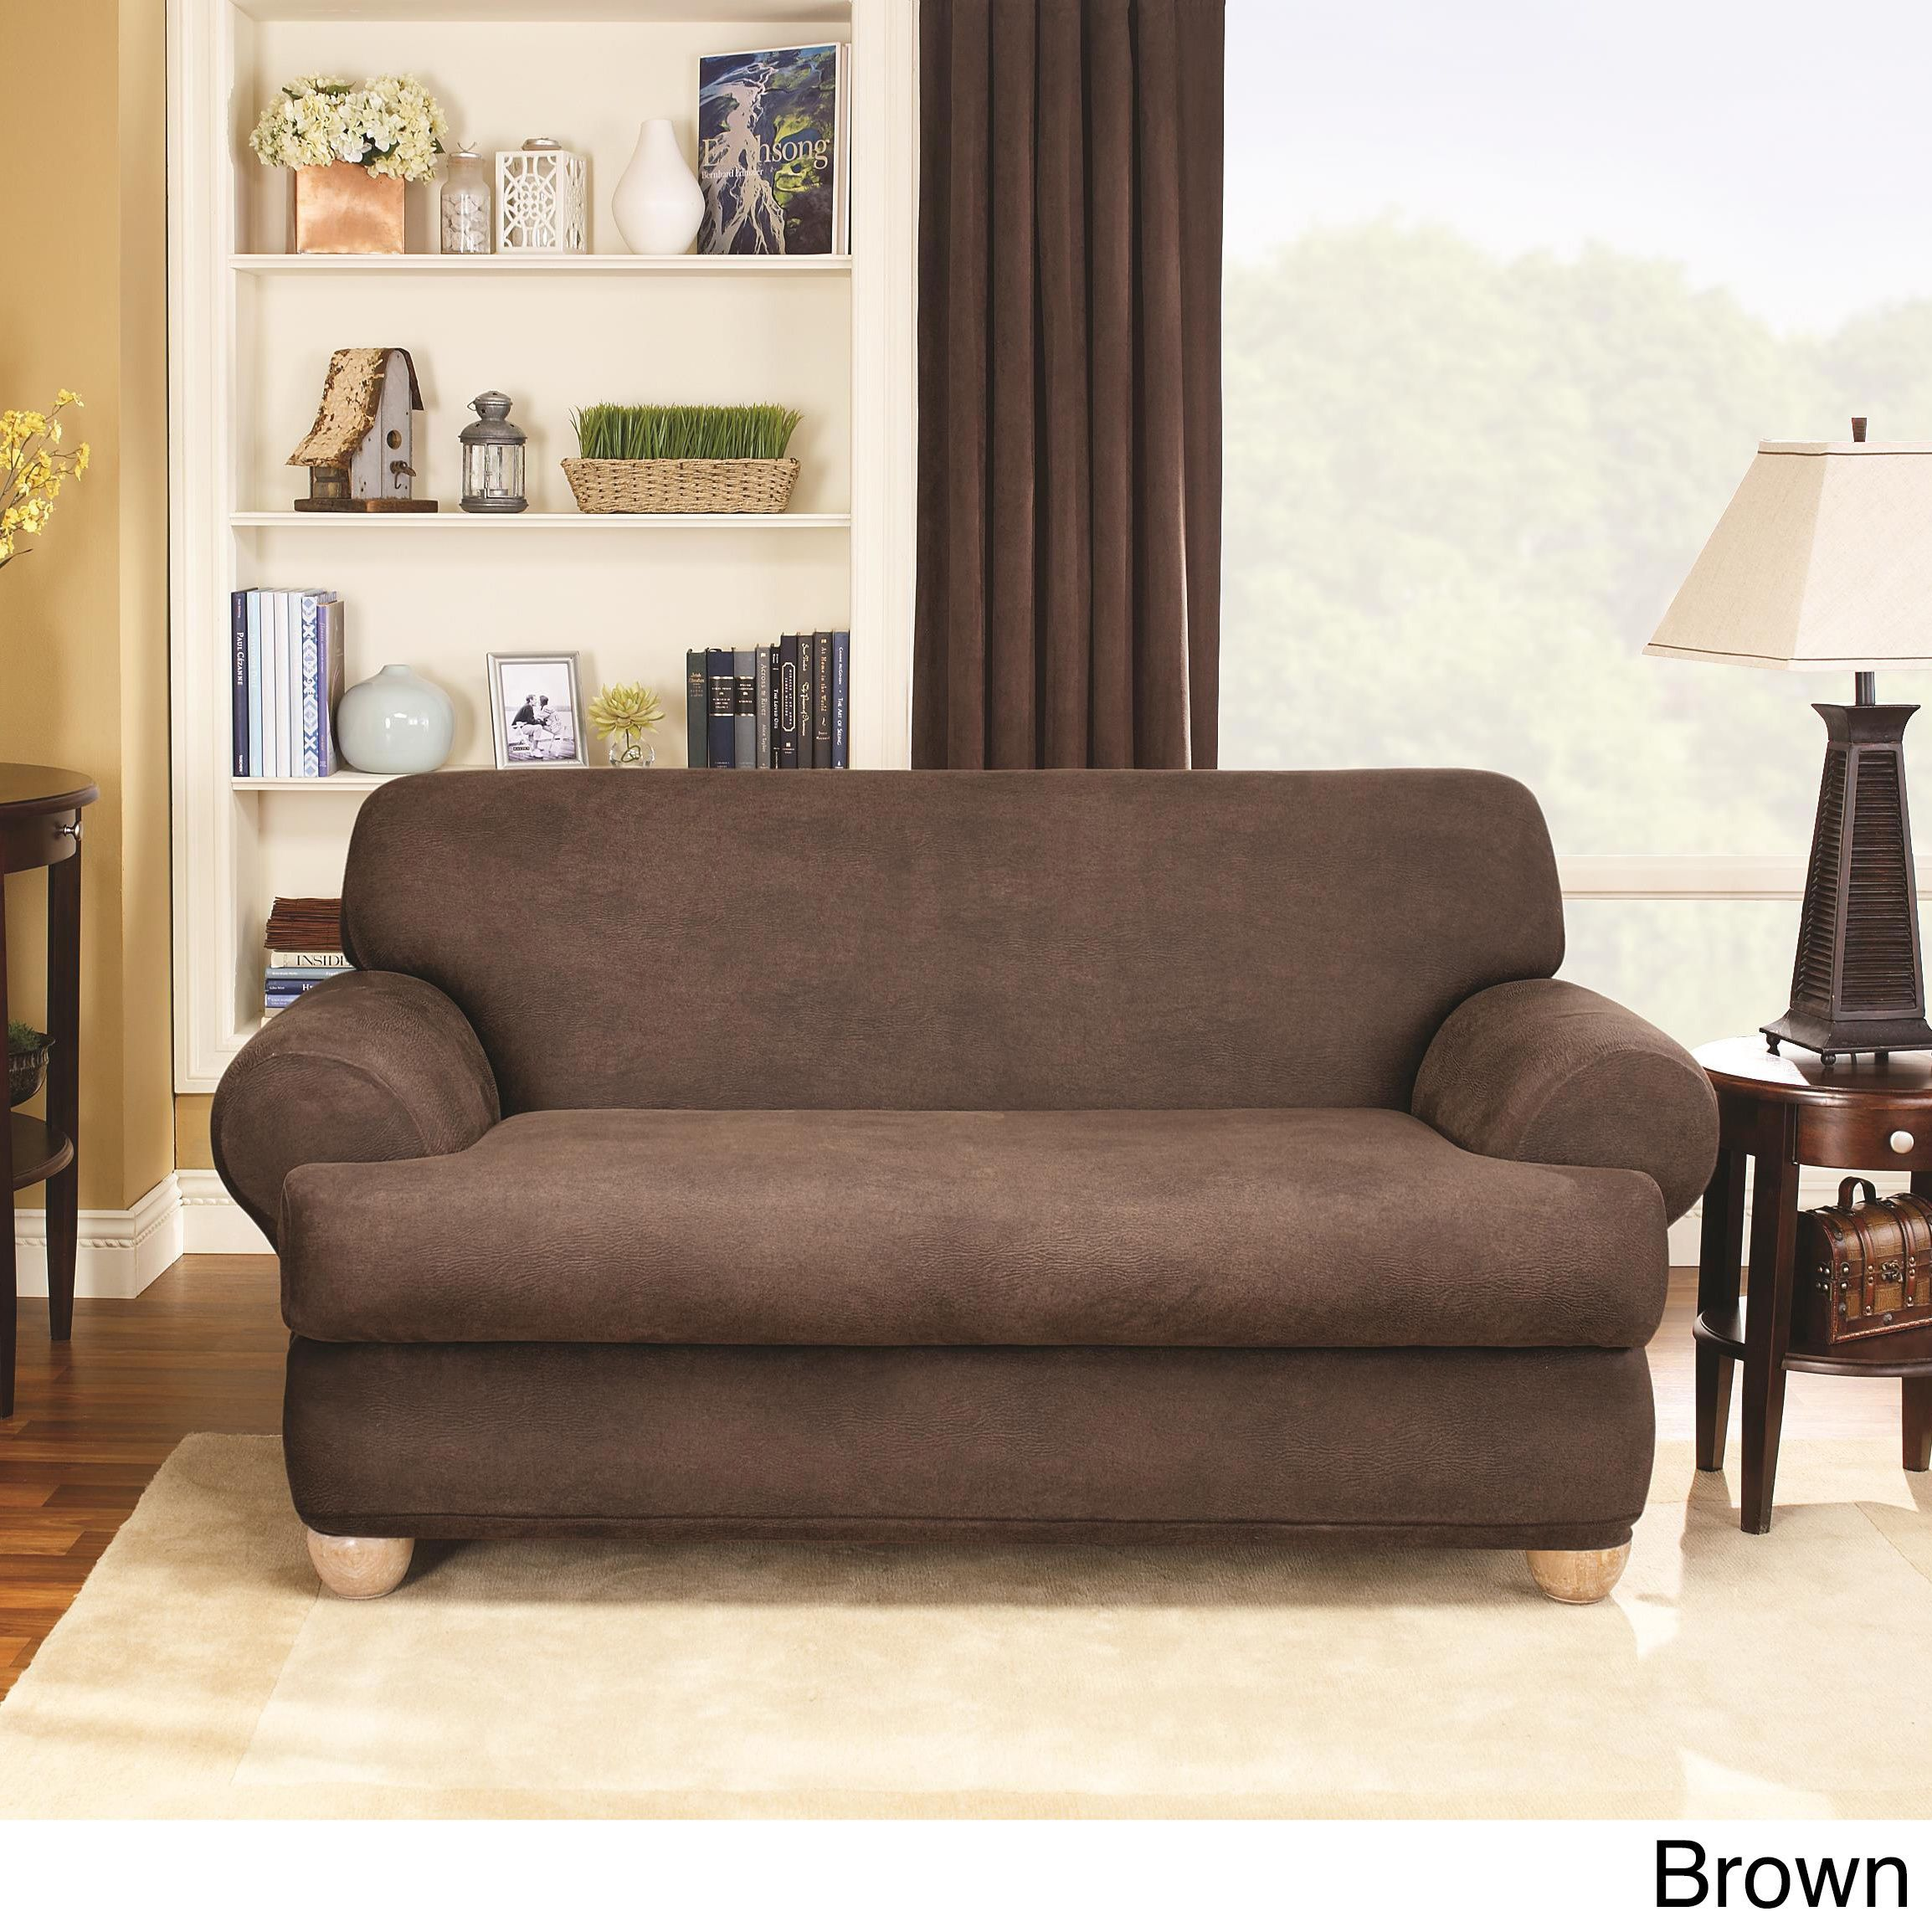 Sure Fit Stretch Faux Leather 2-piece T-cushion Sofa Slipcover (Brown) (Solid)